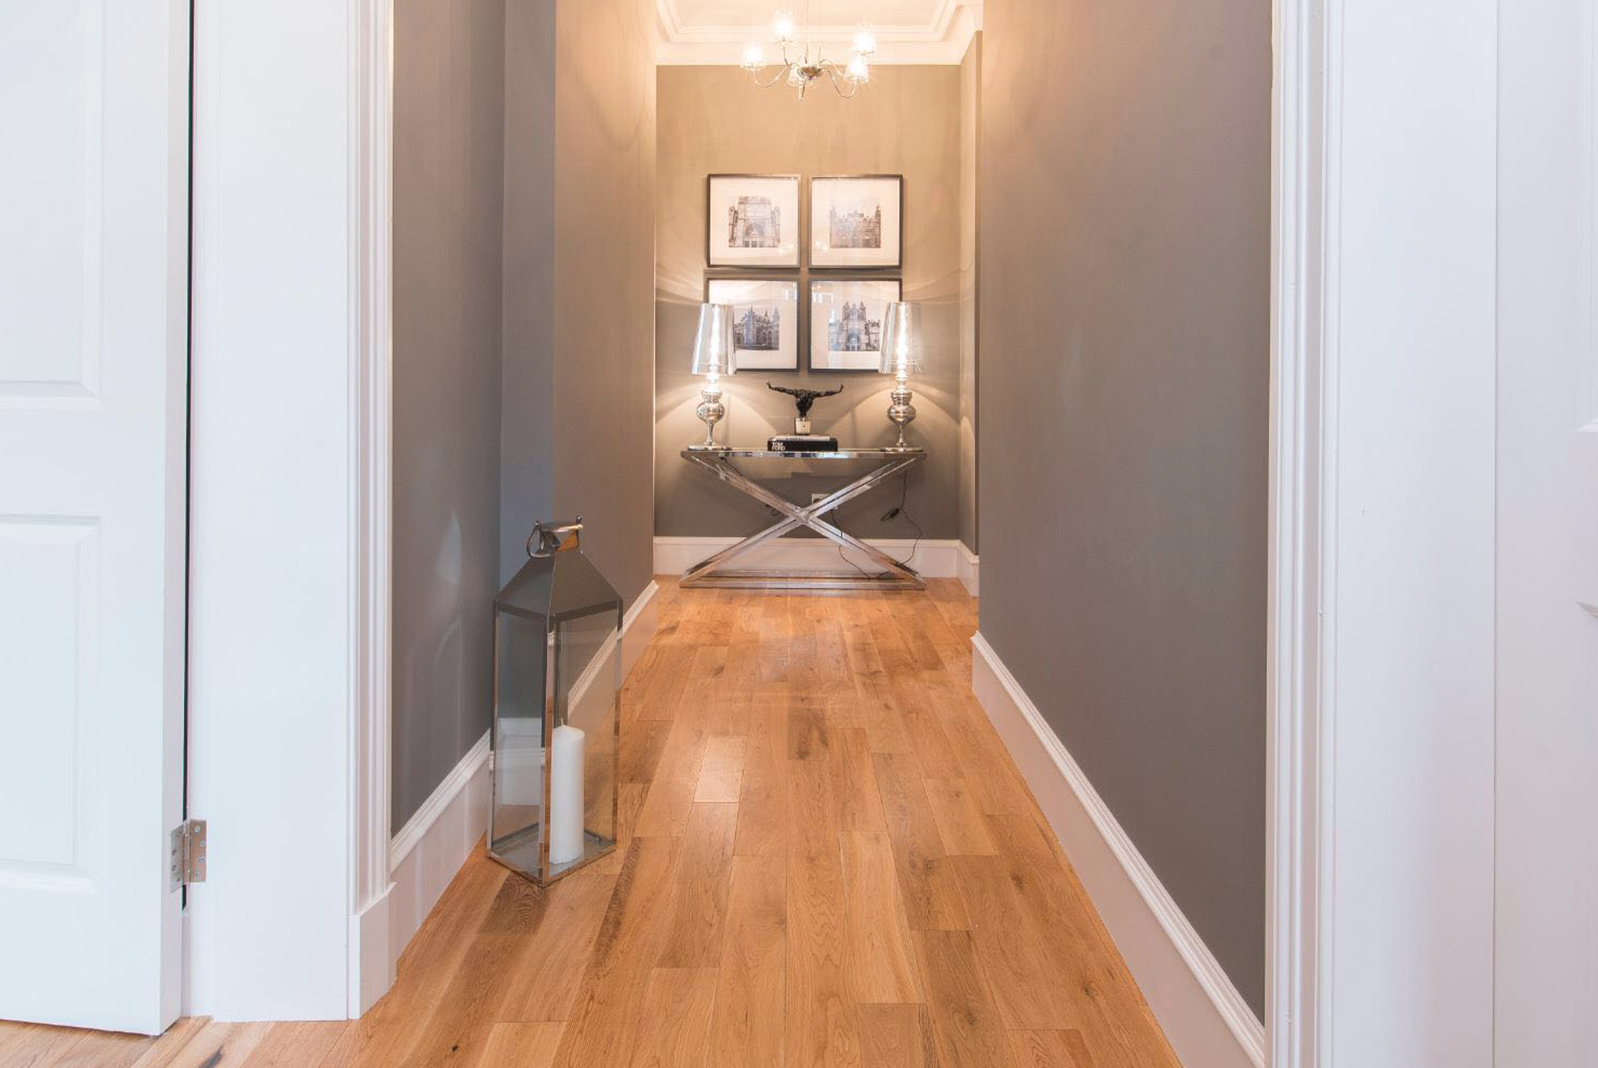 Hallway with wooden flooring and furnished with console table, lamps and four hanging pictures